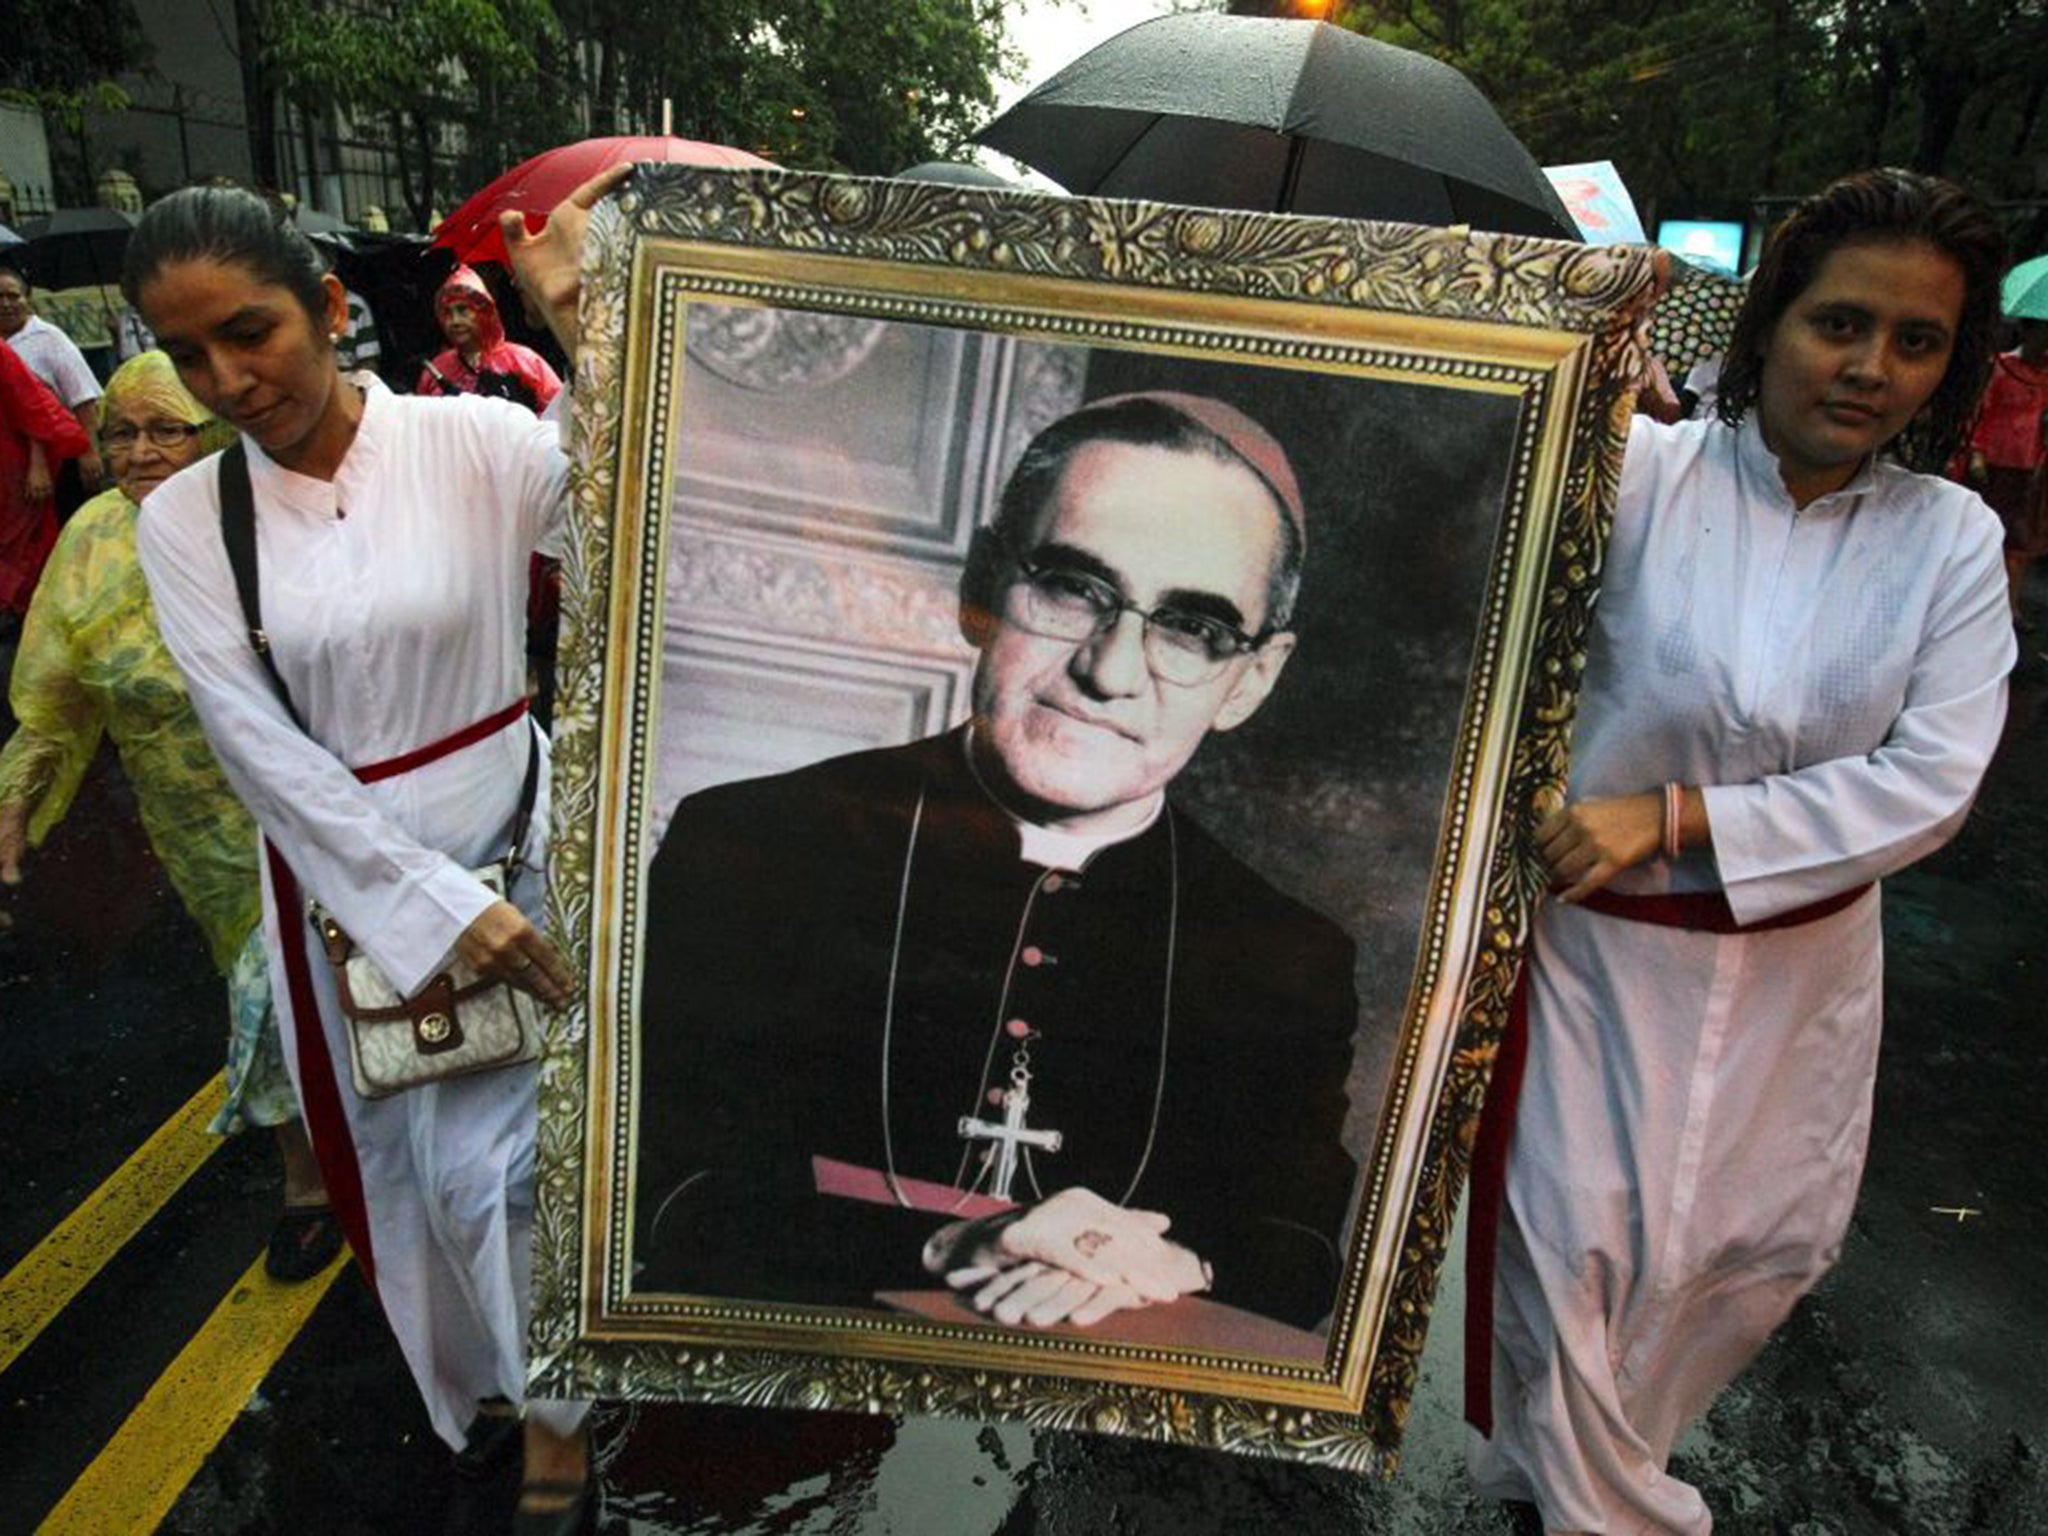 Assassinated Archbishop Oscar Romero cleared for sainthood by Pope Francis, says Vatican